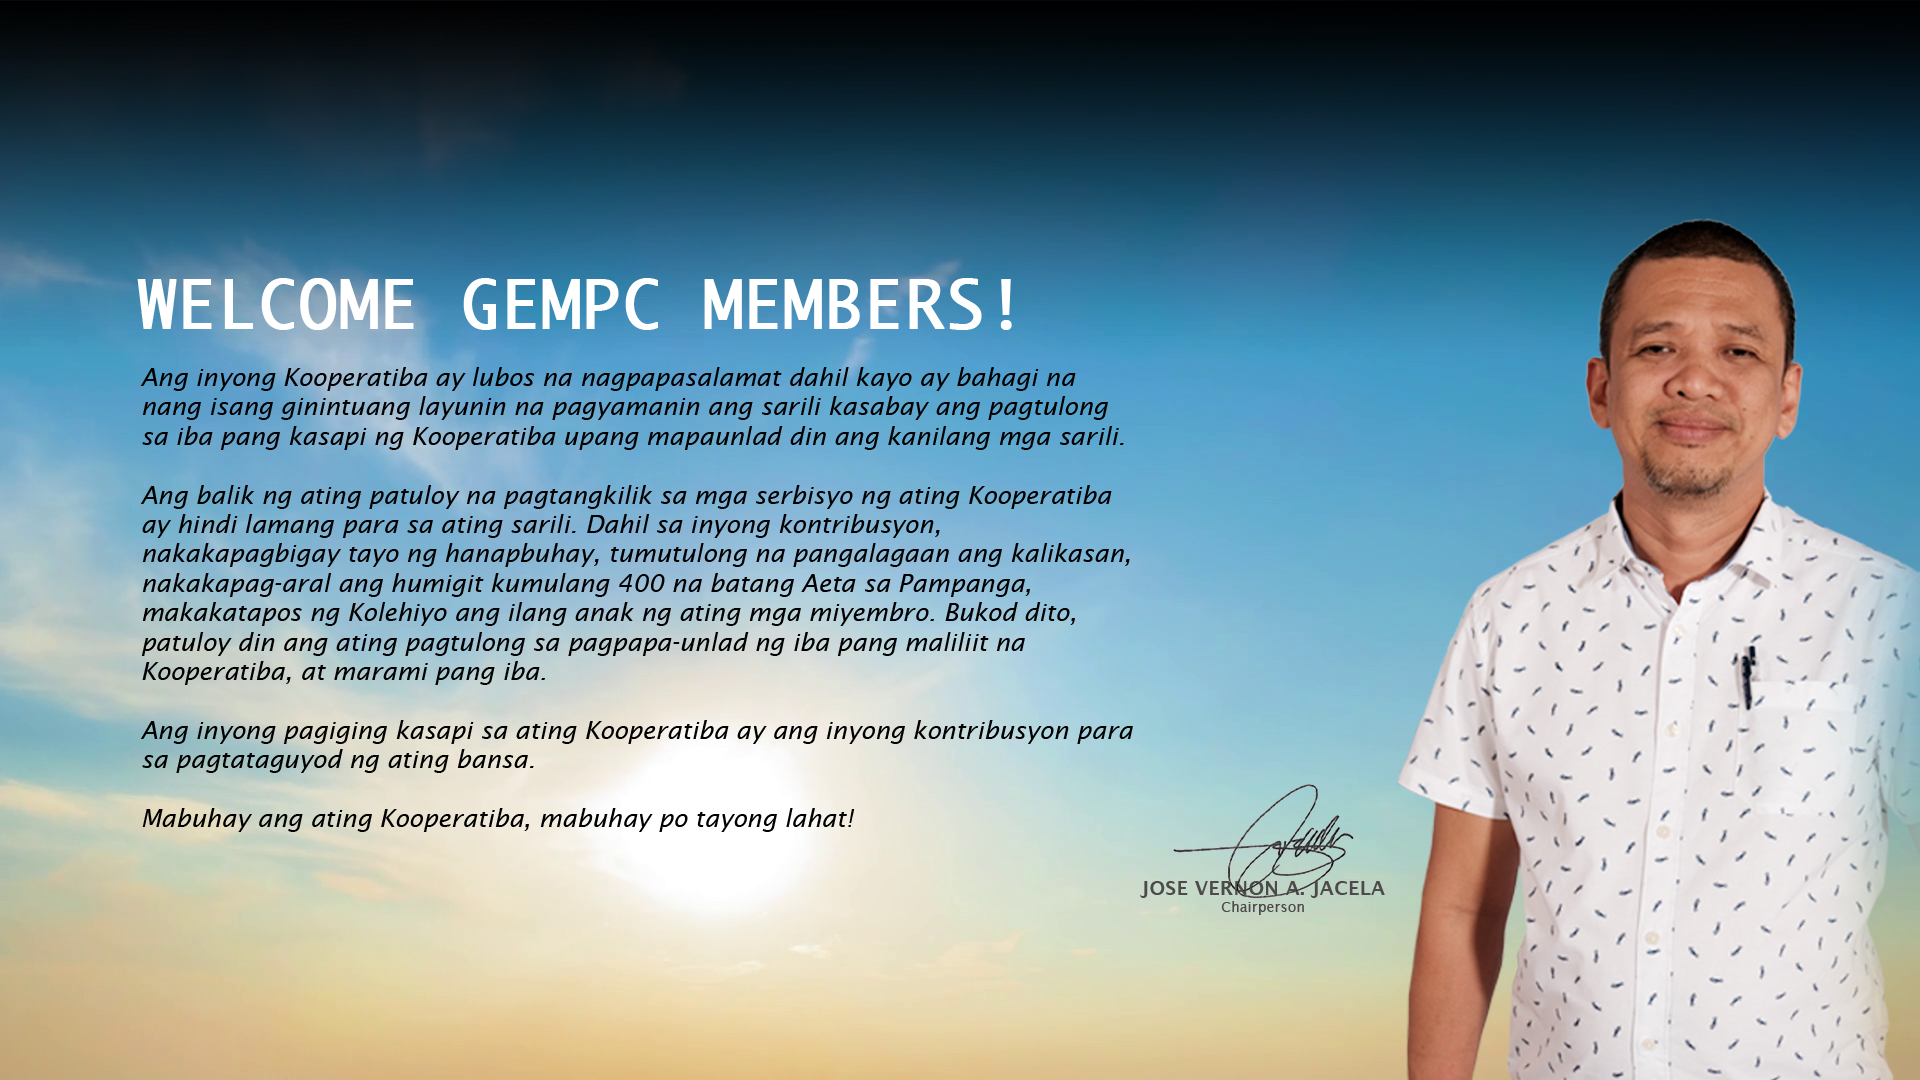 http://gma7empc.coop/about-us/1/welcome-gempc-members